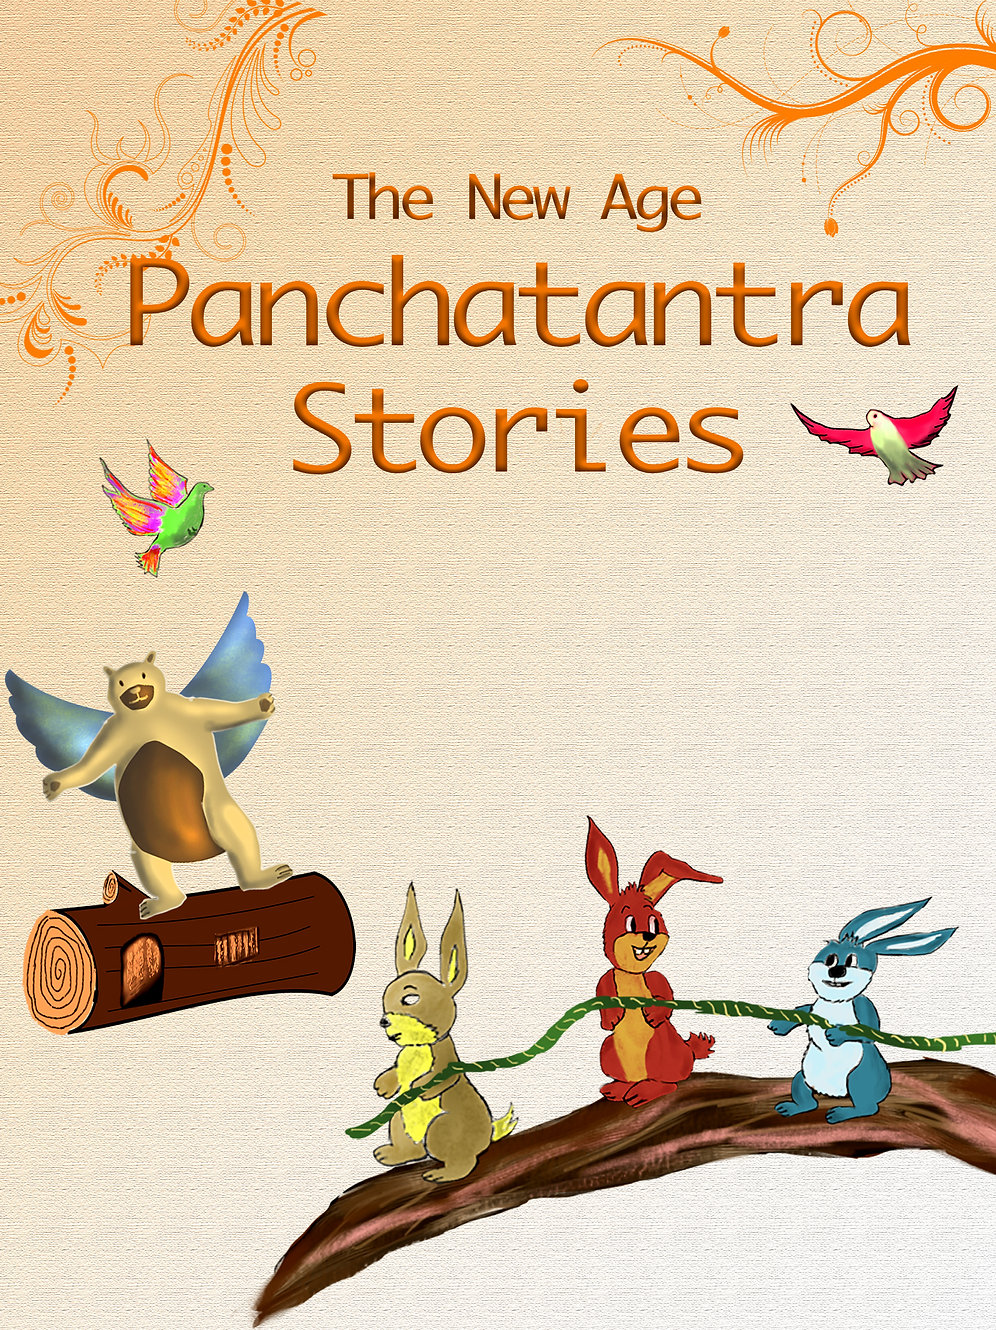 Mouse Princess and Space Animals: Panchatantra Stories with a twist